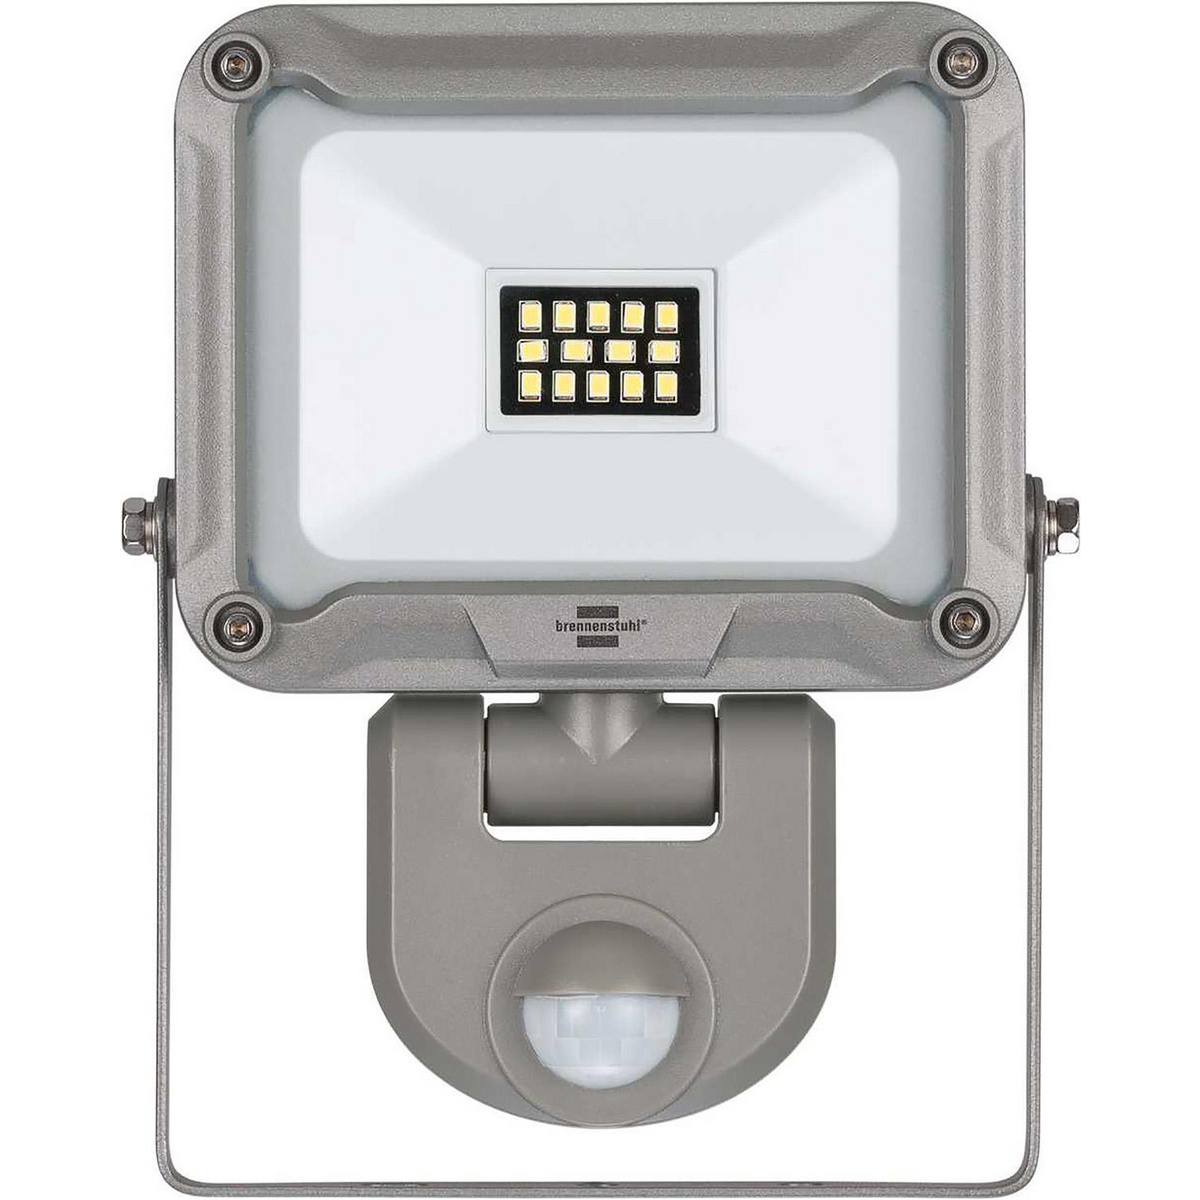 Suitable for indoor and outdoor installation, IP 44. 10 W high-power chip LED light for wall mounting, with extra wide light distribution to illuminate a large area. Ideal for hobbyists, workshops and construction sites. Automatically illuminates entrance